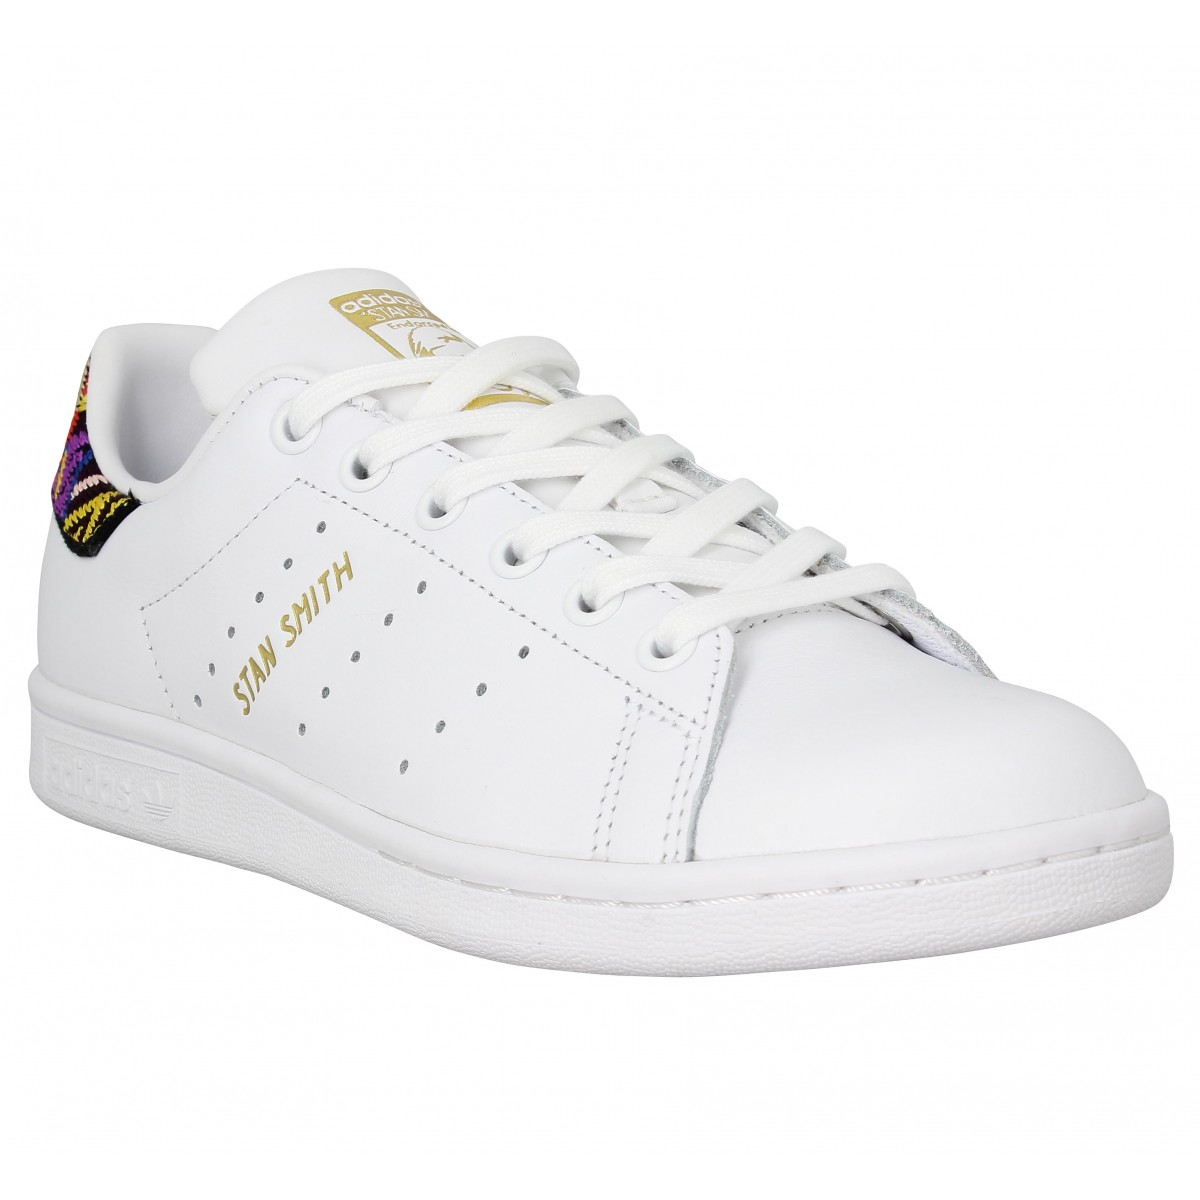 dd9c886e79 Chaussures Adidas stan smith x the farm company cuir femme blanc ...